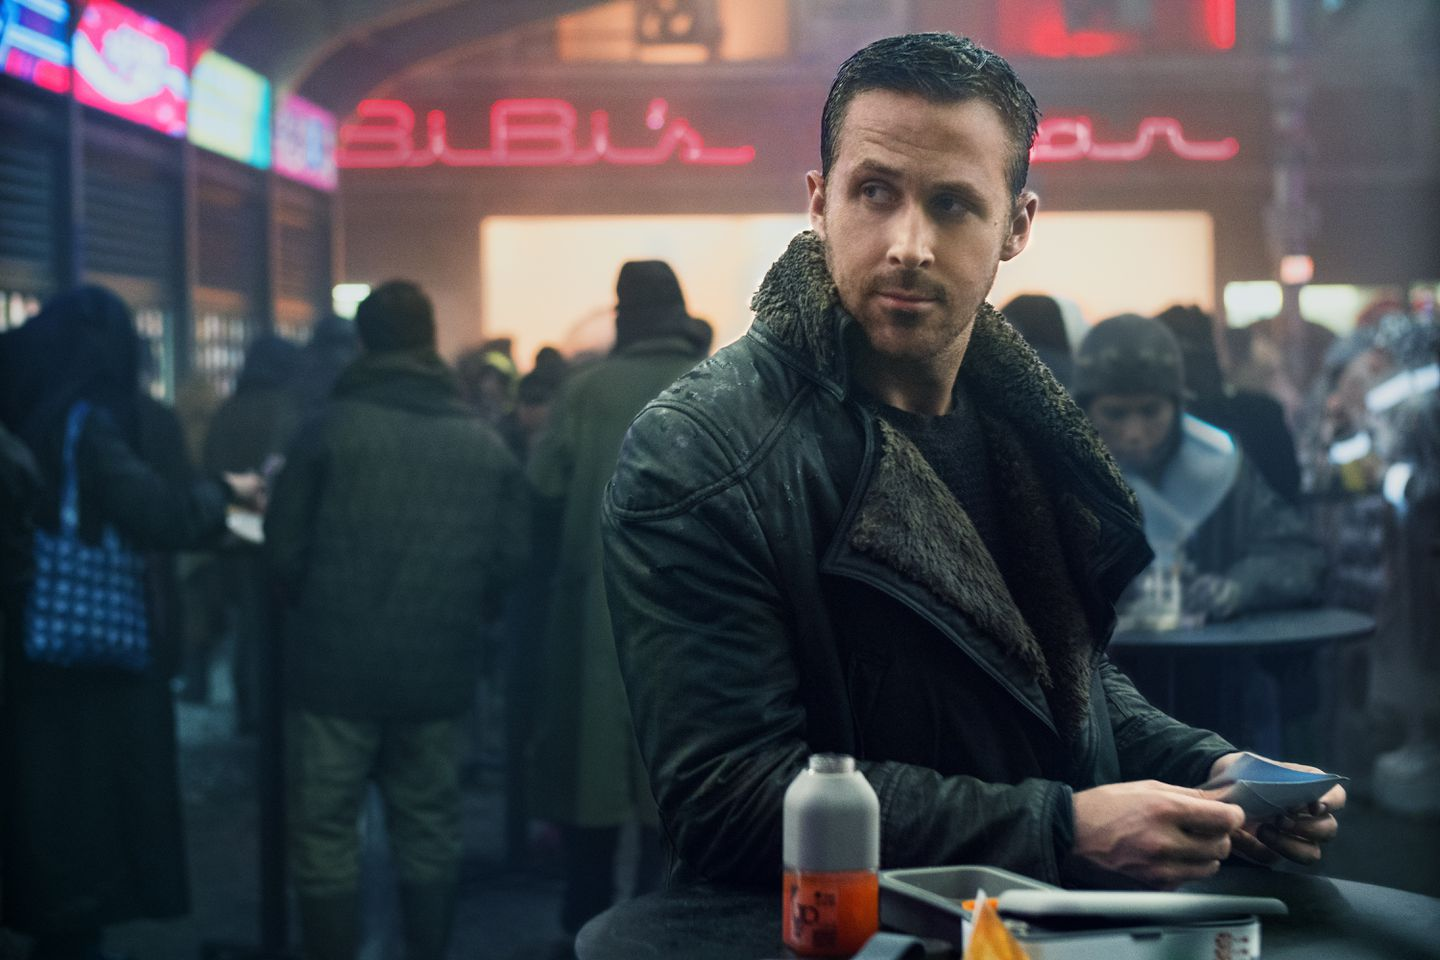 Ryan Gosling, Chris Evans to star in Netflix's most expensive movie ever, 'The  Gray Man' - The Boston Globe